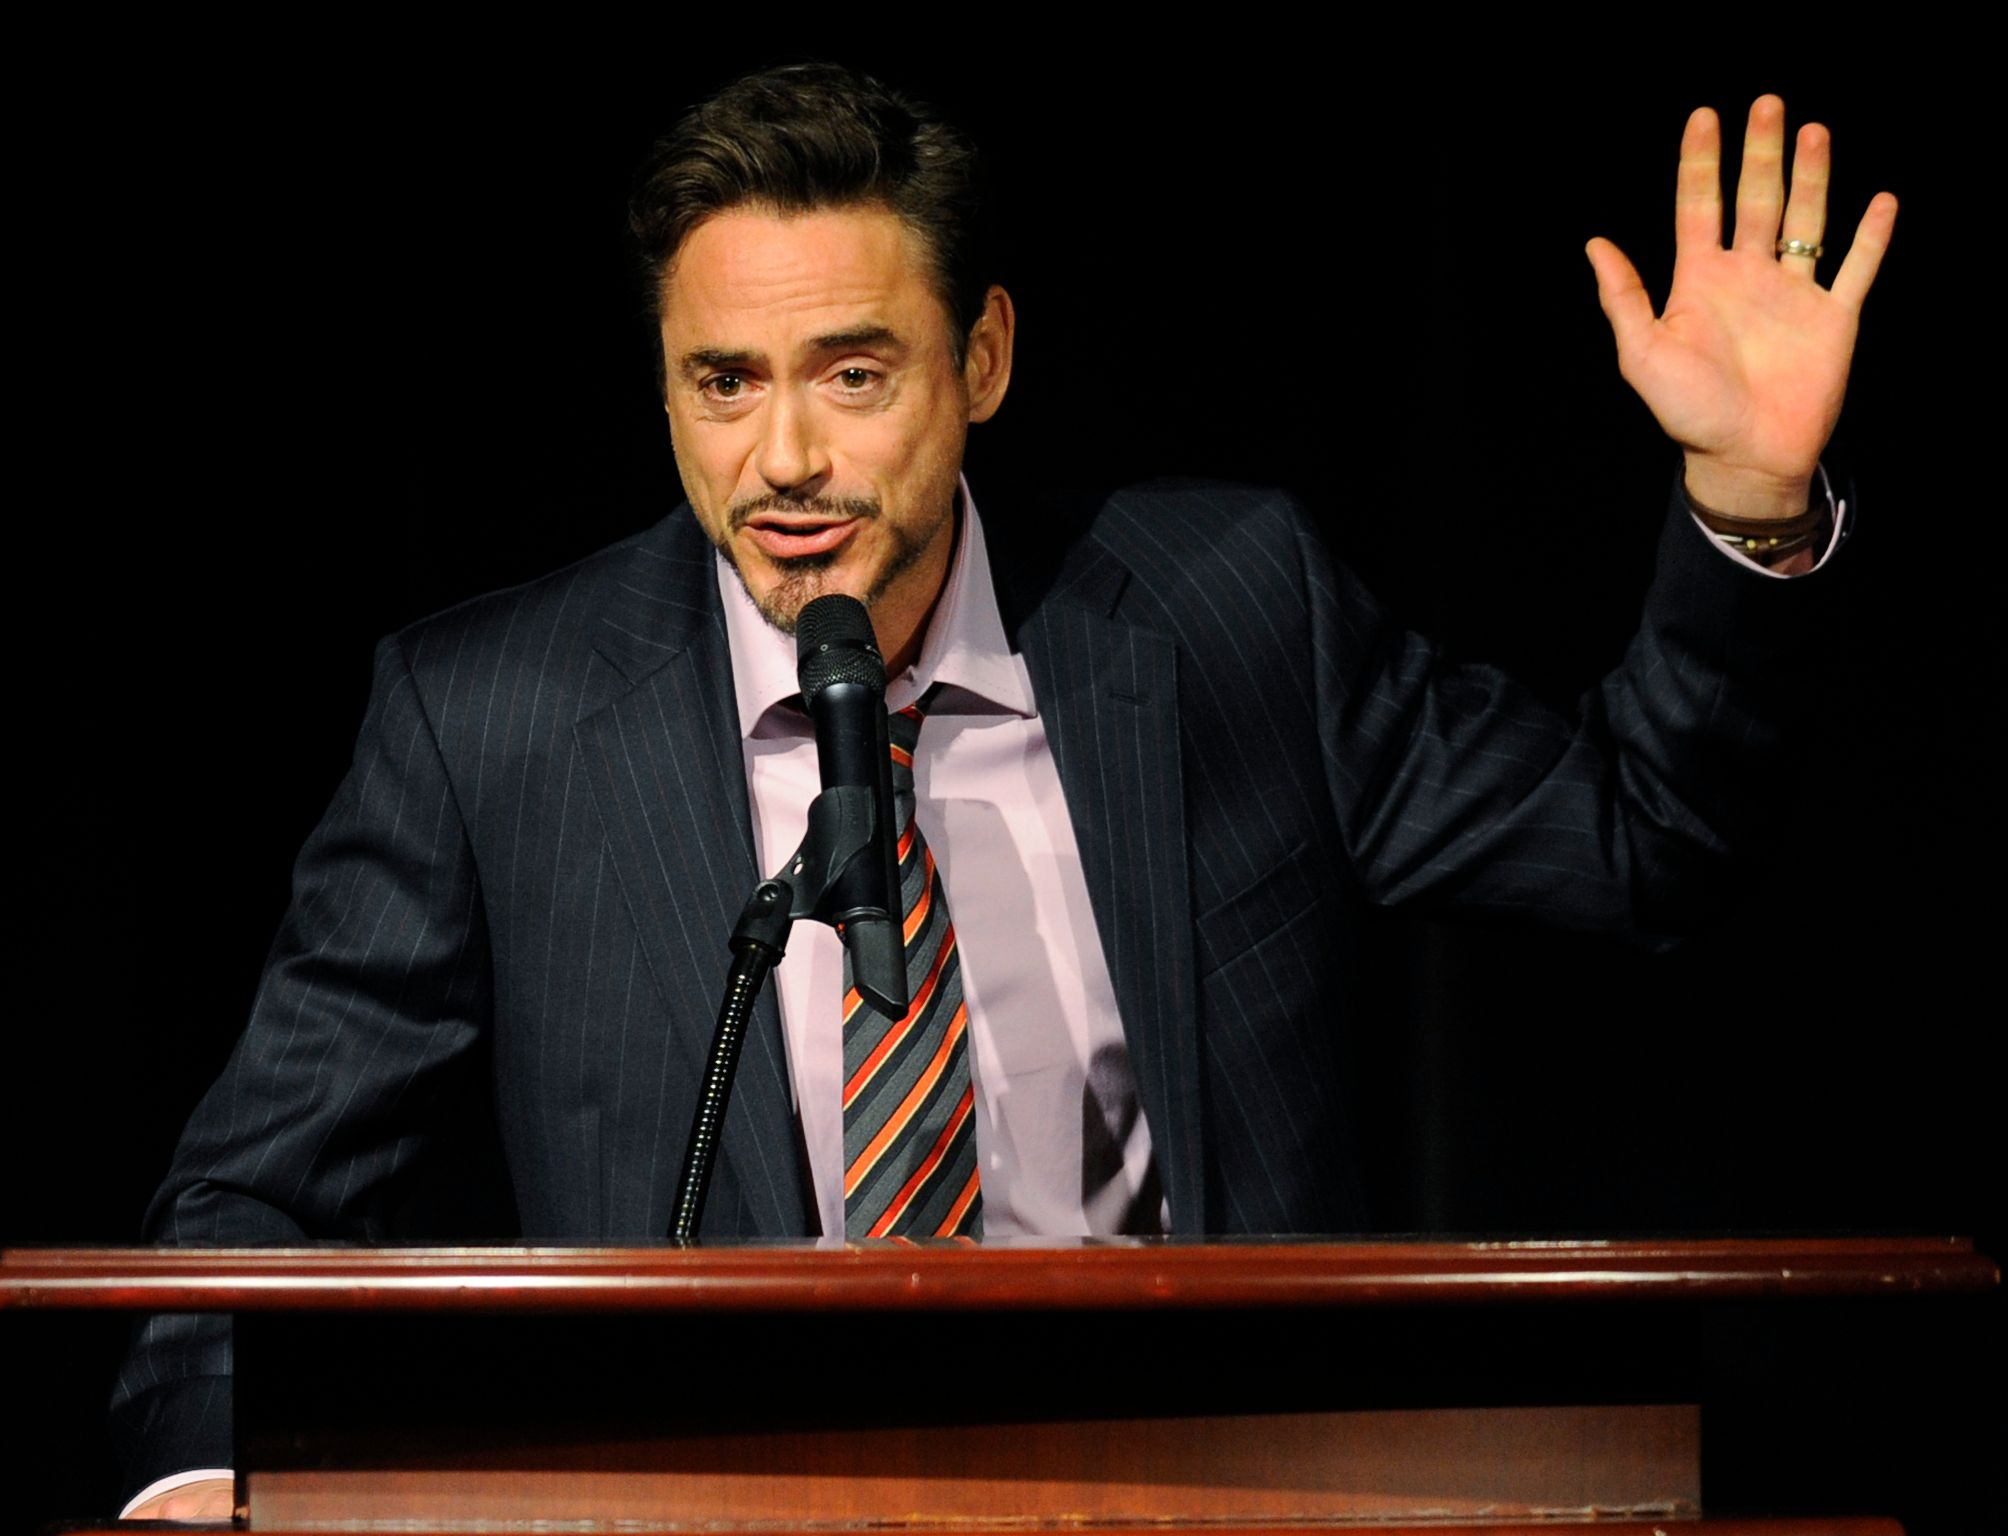 10-Celebrities-With-The-Best-Social-Media-Skills-Robert-Downey-Jr The 10 Most Popular Celebrities on Social Media The 10 Most Popular Celebrities on Social Media aptr rdj1